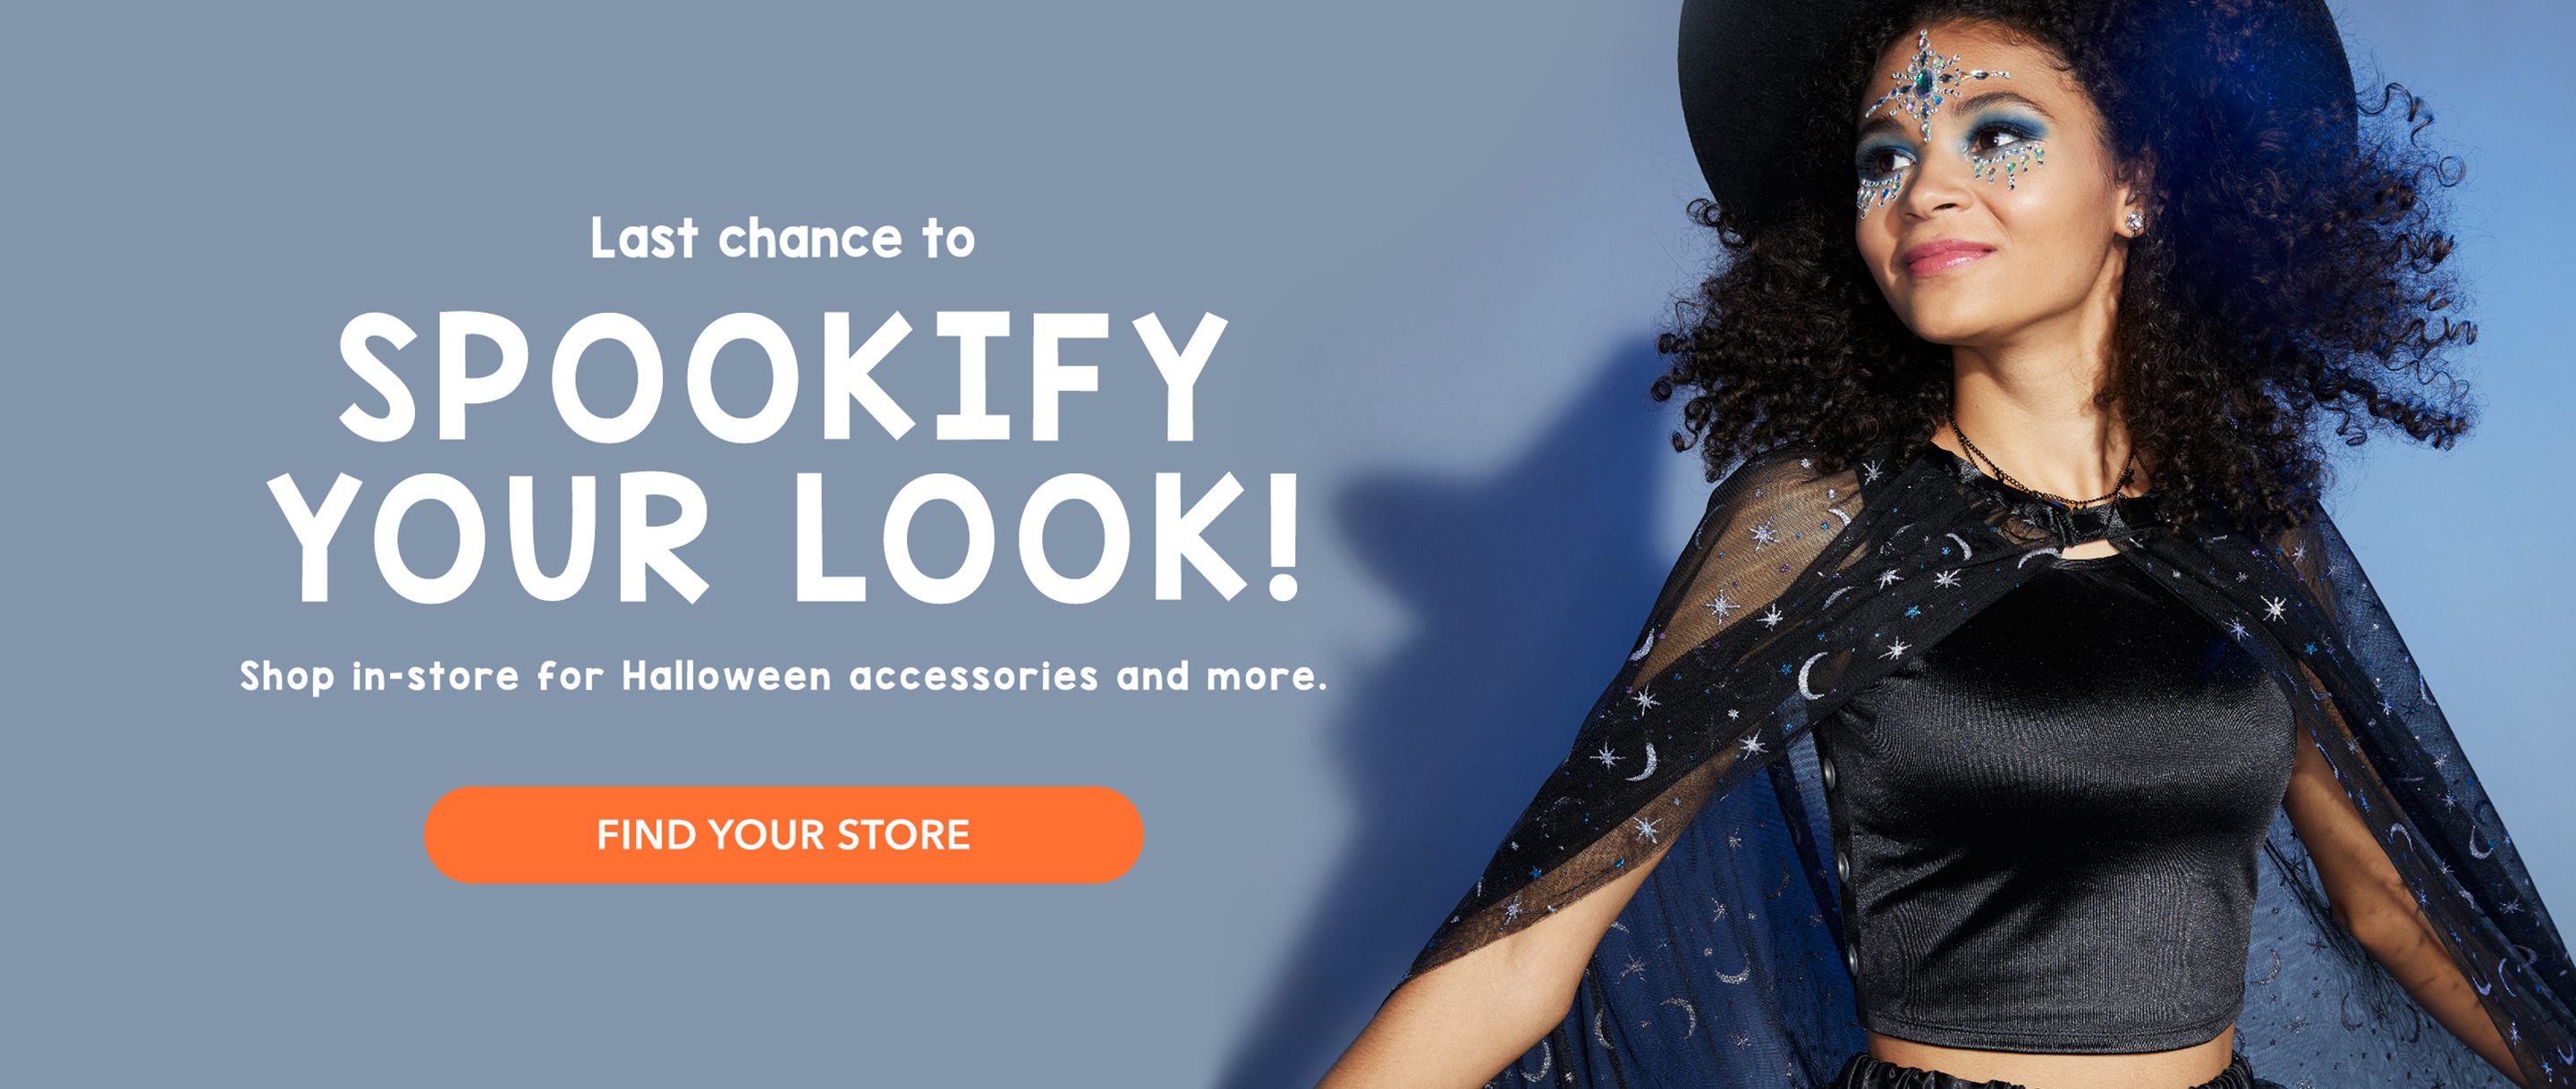 Last chance to SPOOKIFY your look! Shop in-store for Halloween accessories and more